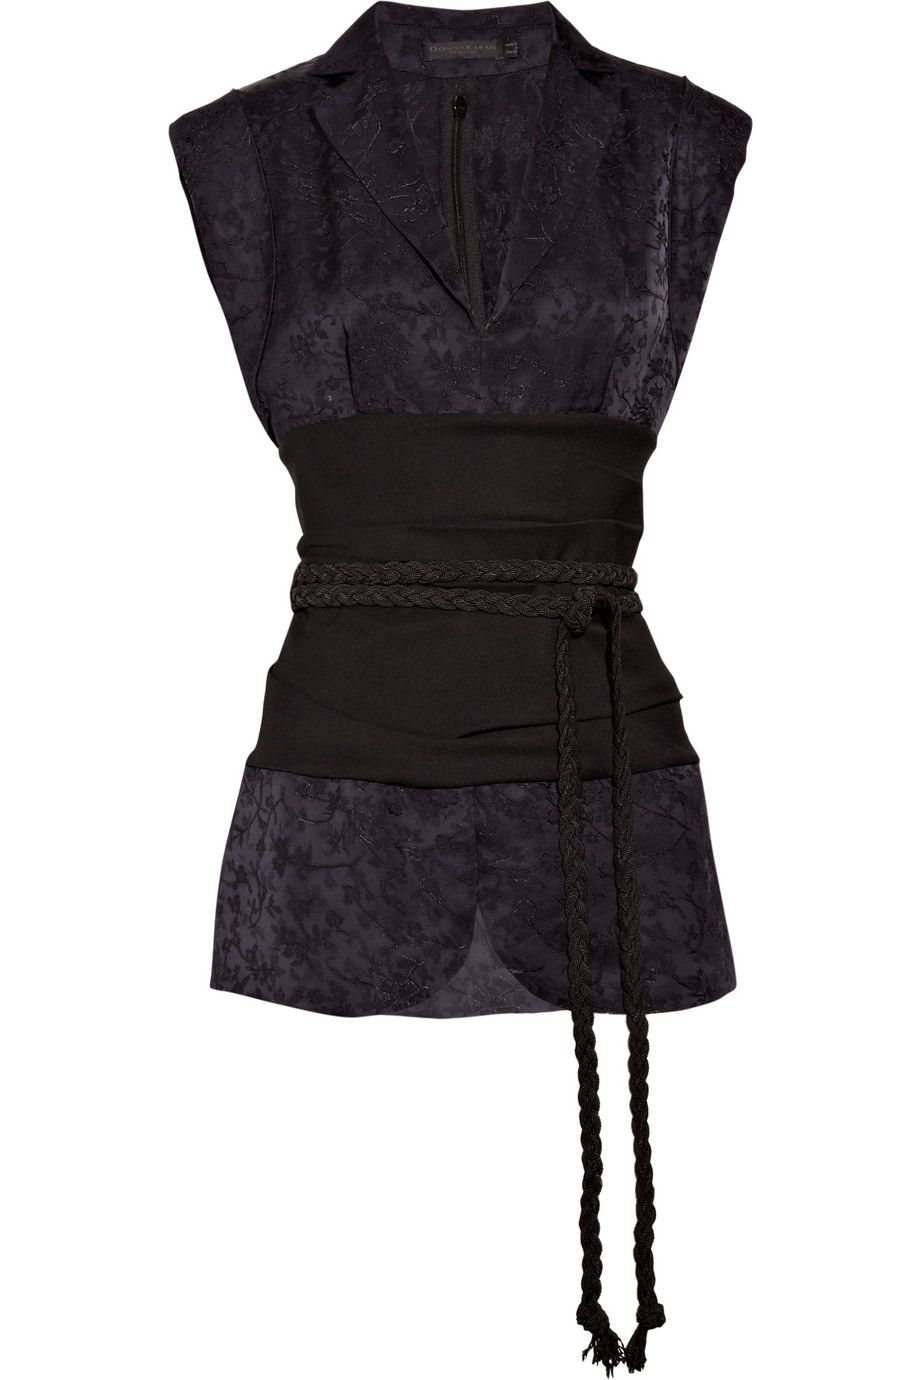 DONNA KARAN  Chinoiserie satin jacquard and crepe top fashion clothes clothing pretty beautiful goth gothic kimono